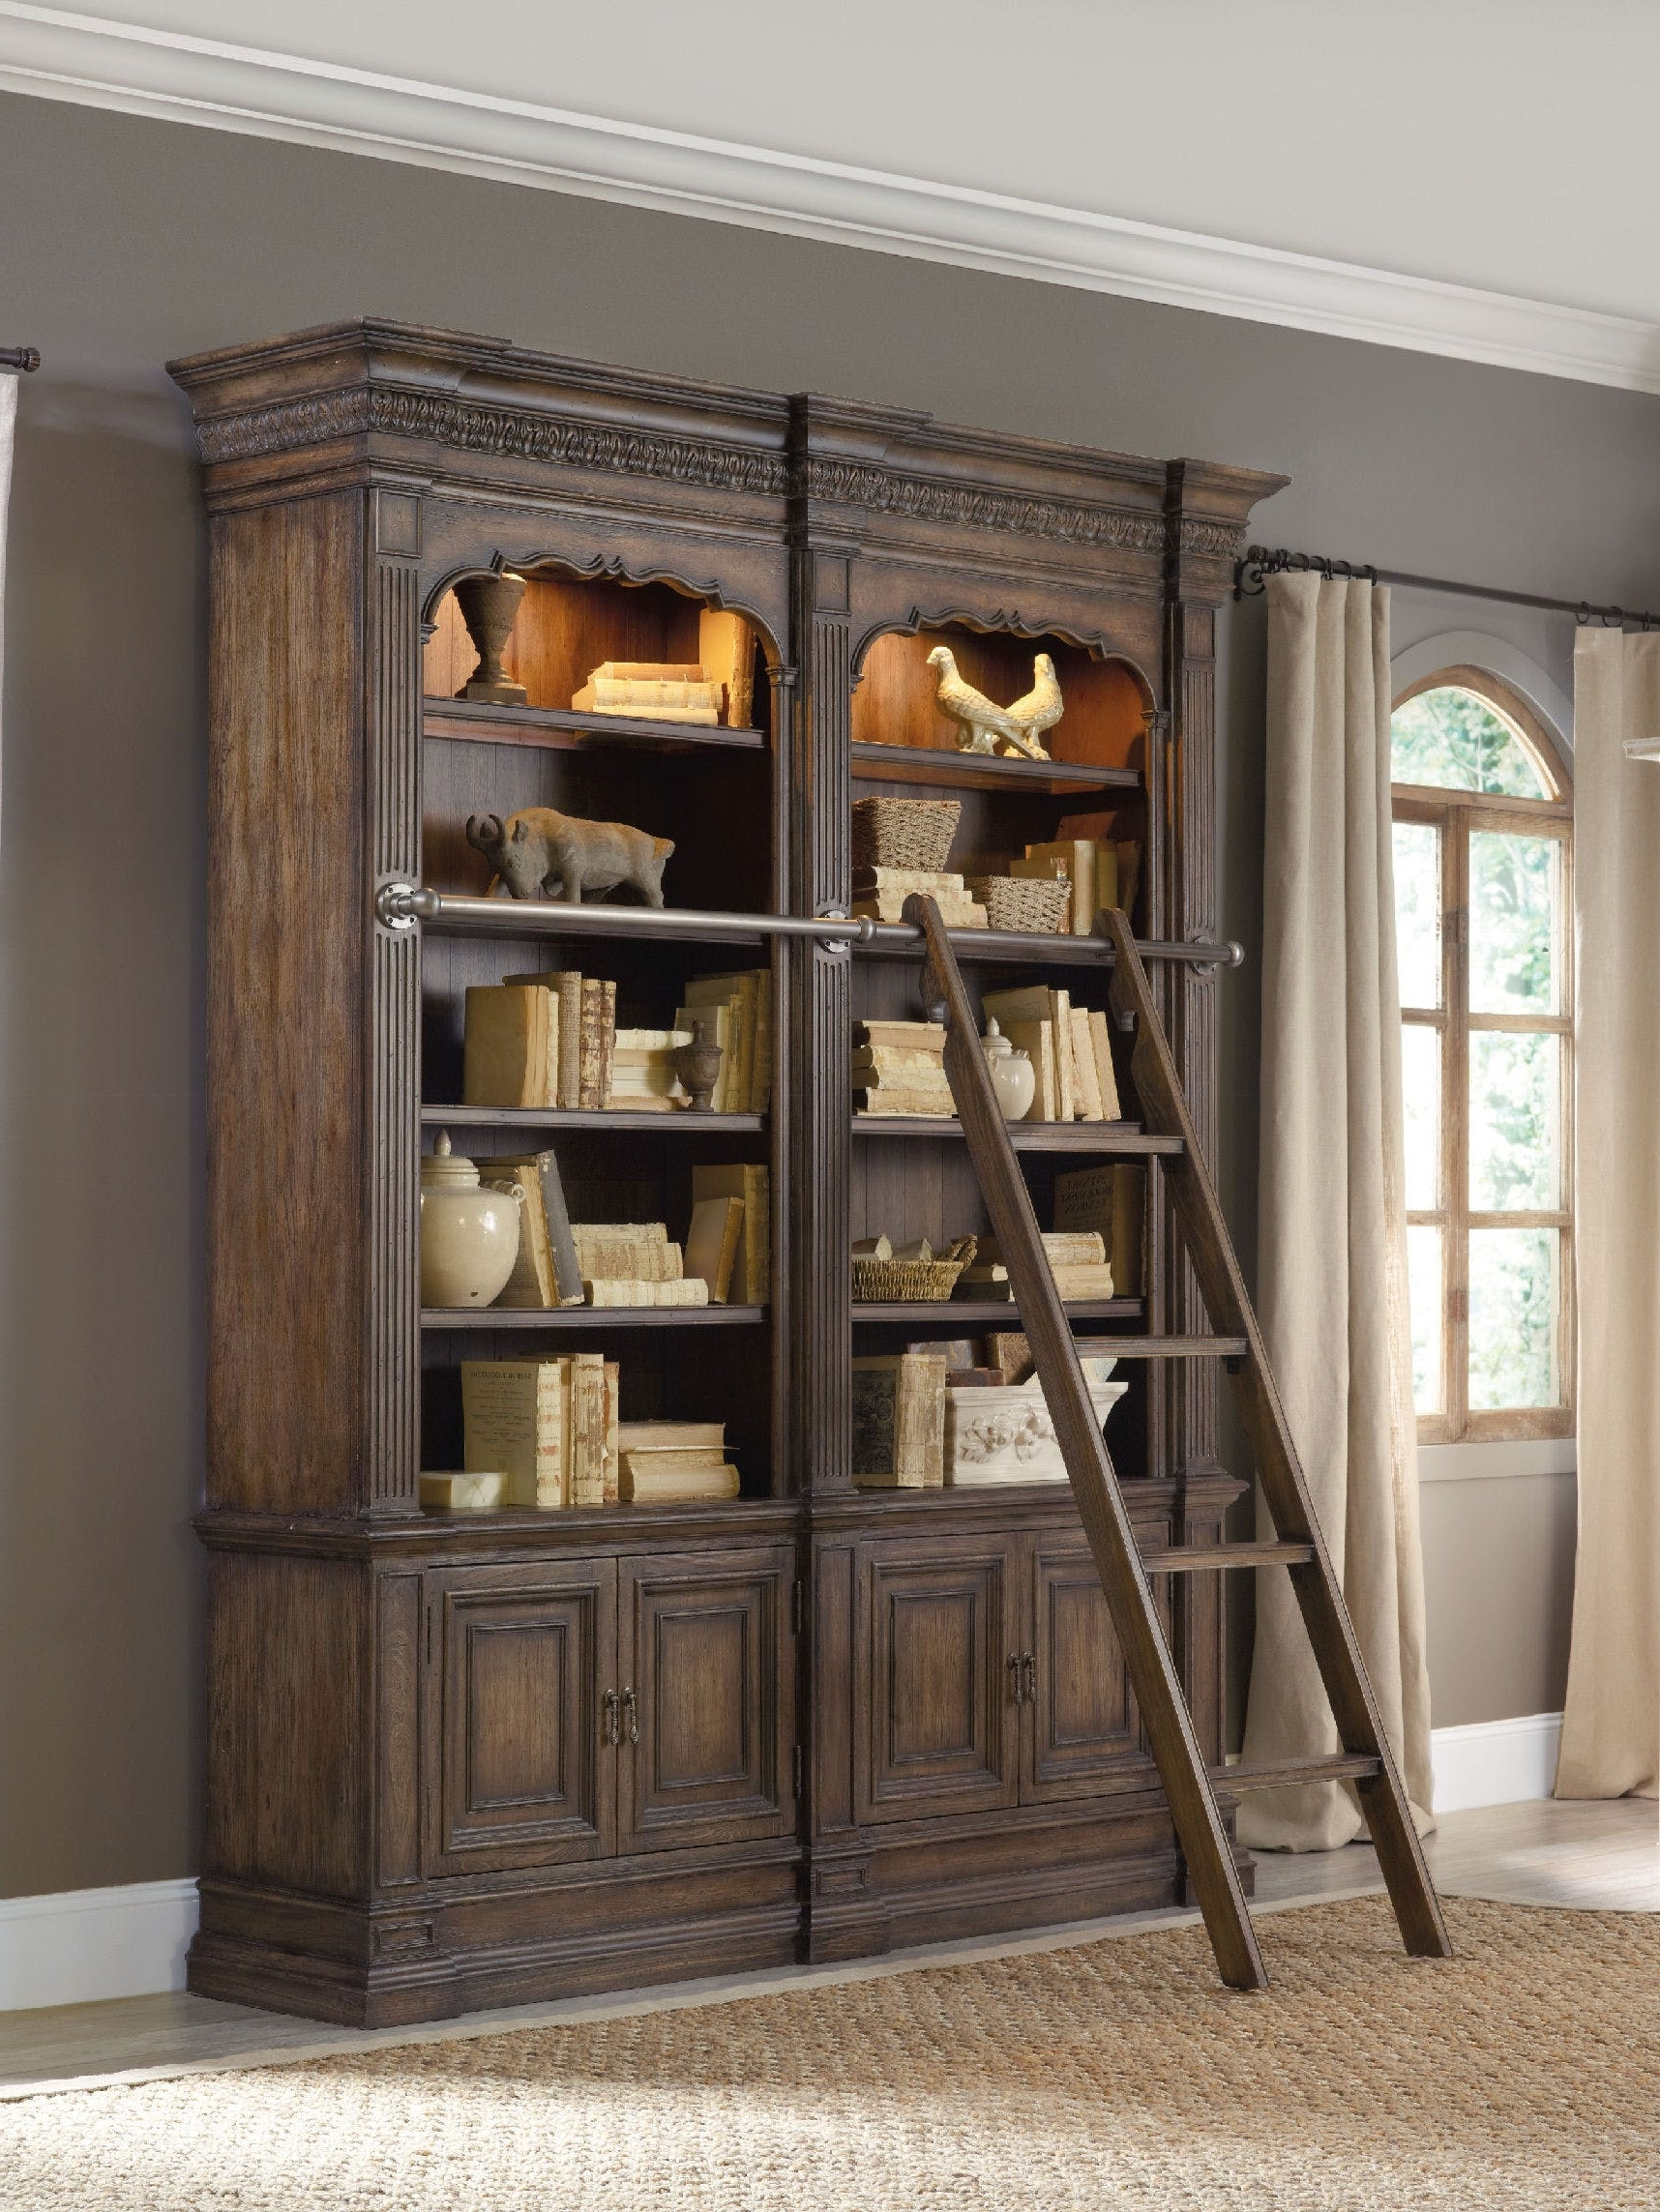 2018 Bookcases With Ladder With Bookcase Astounding Library With Ladder Photo Concept Plans Wall (View 2 of 15)